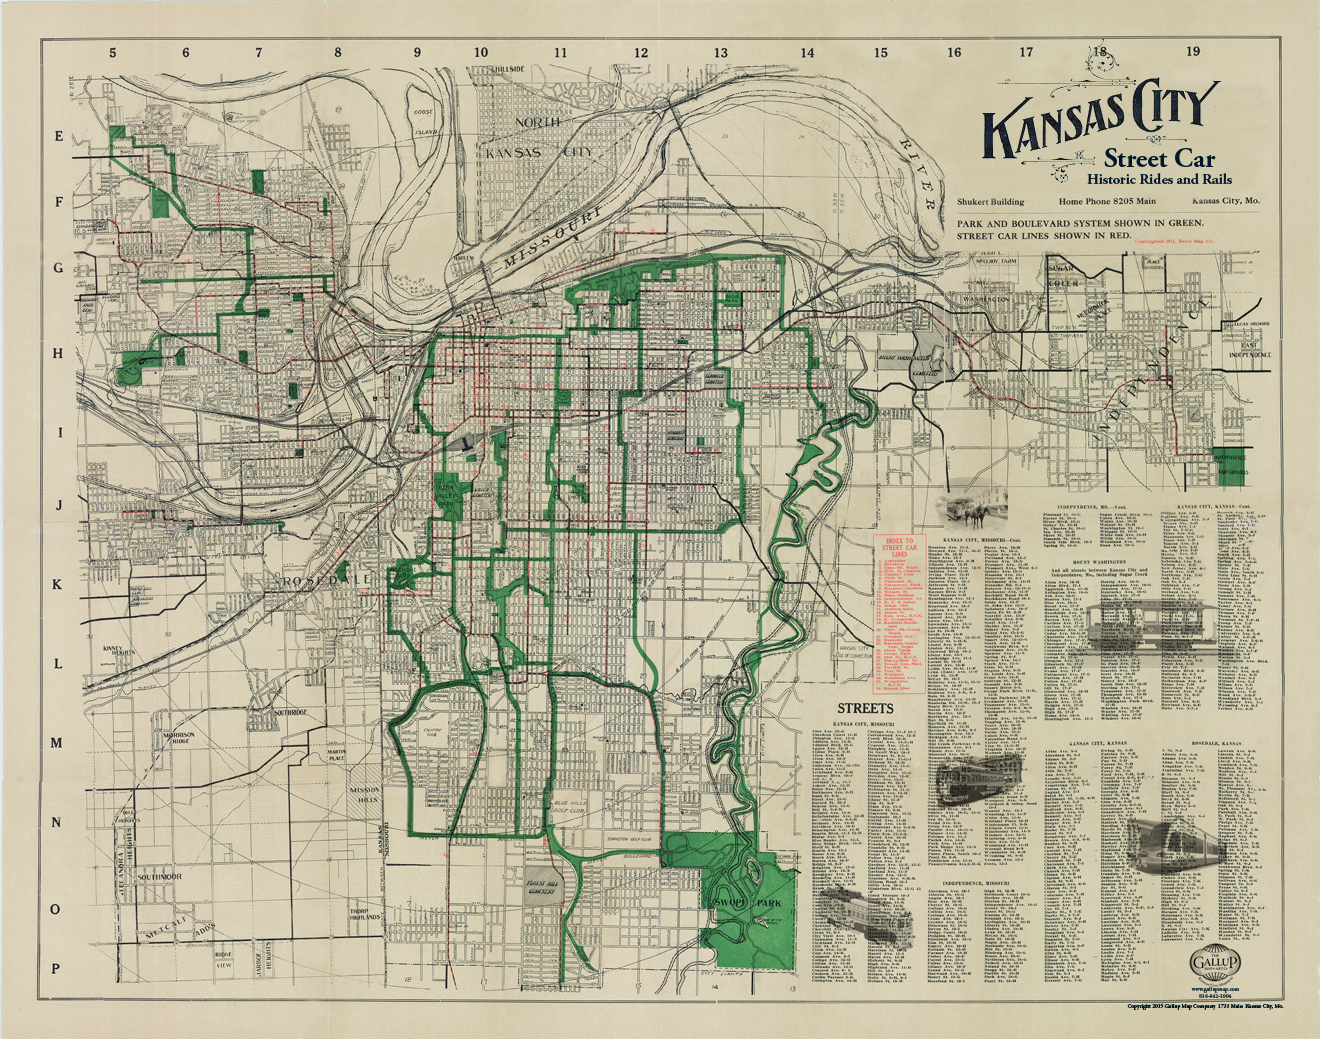 Kansas City Berry Map Company Street Car Map Anitique Vintage - Kansas city map